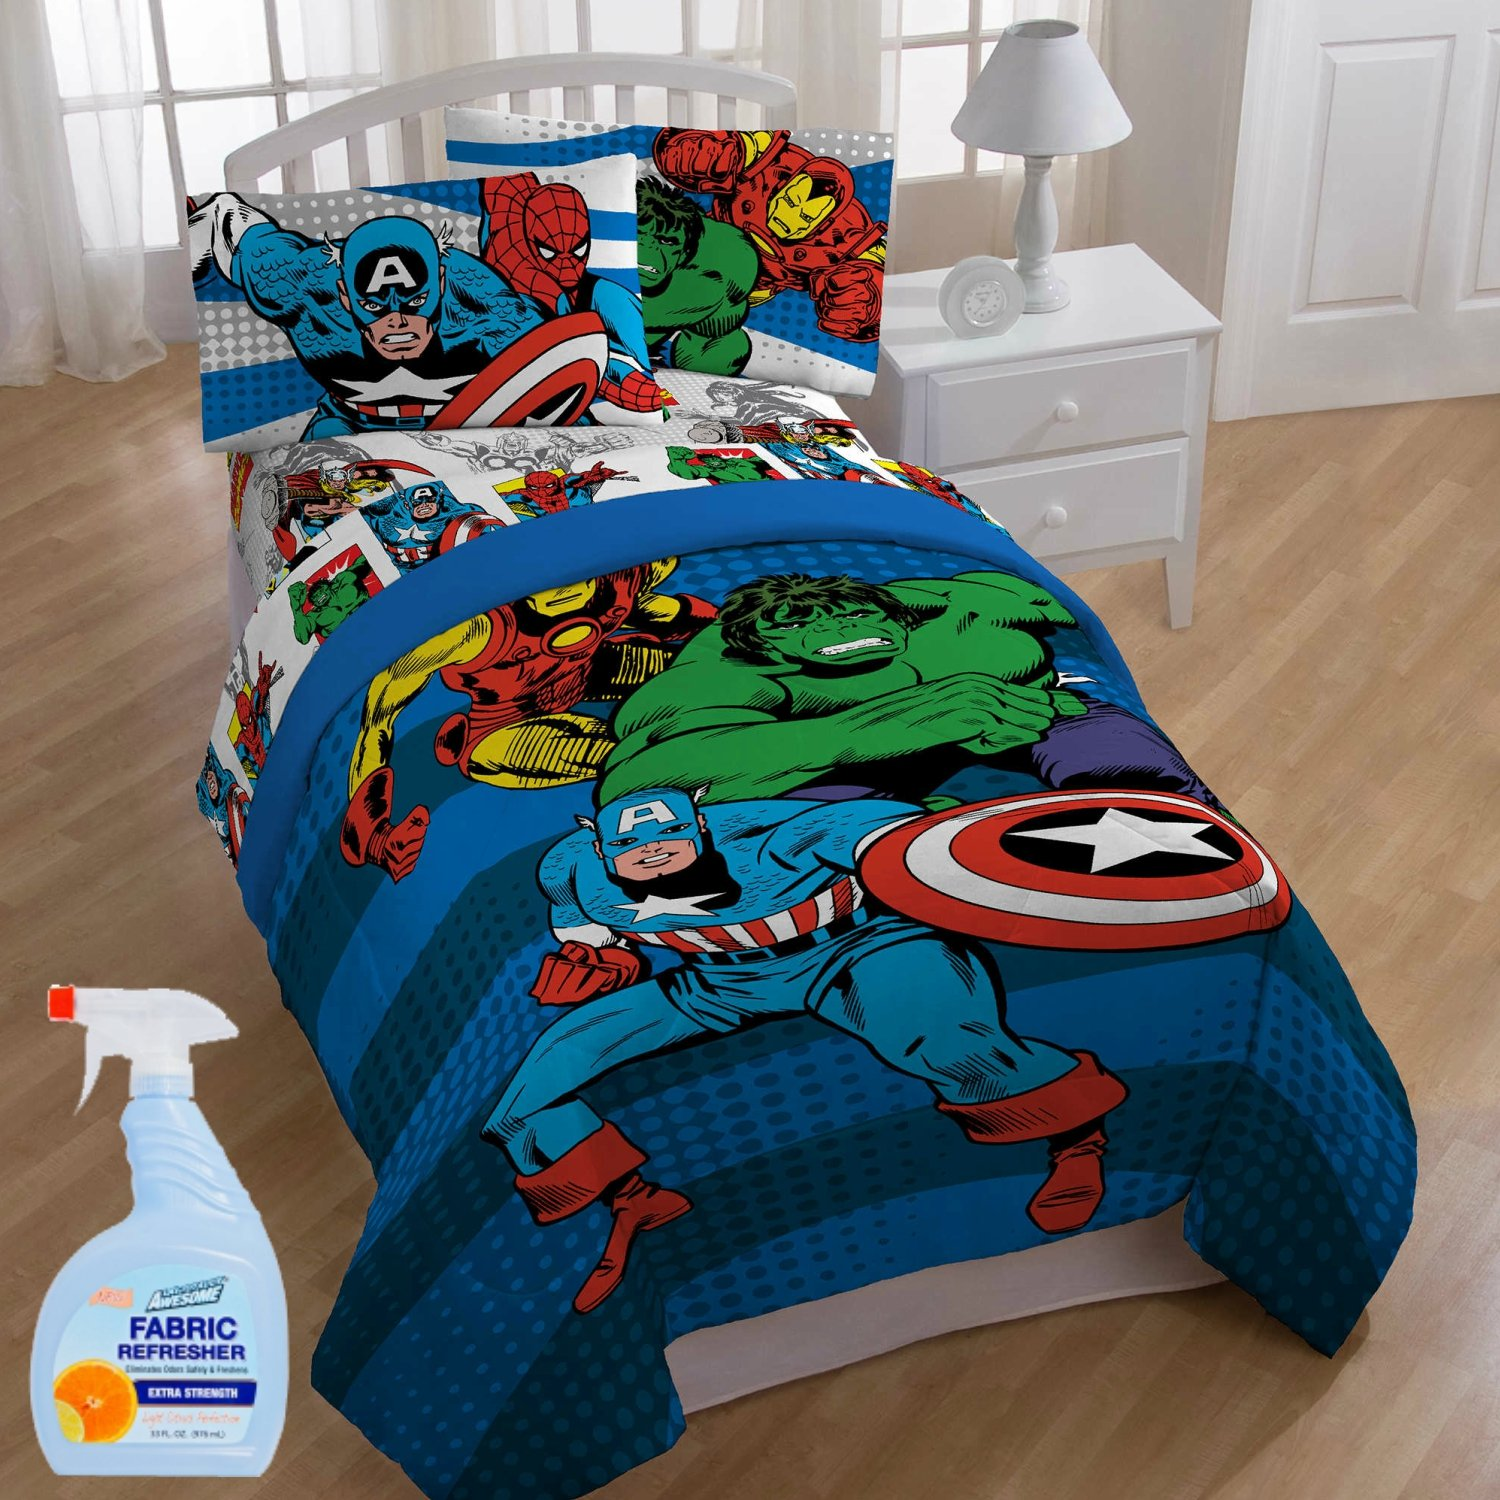 Marvel Comics Good Guys Kids 5-Piece FULL Size Bed in a Bag Reversible Comforter Set, Made of 100% Polyester with Fabric Refresher